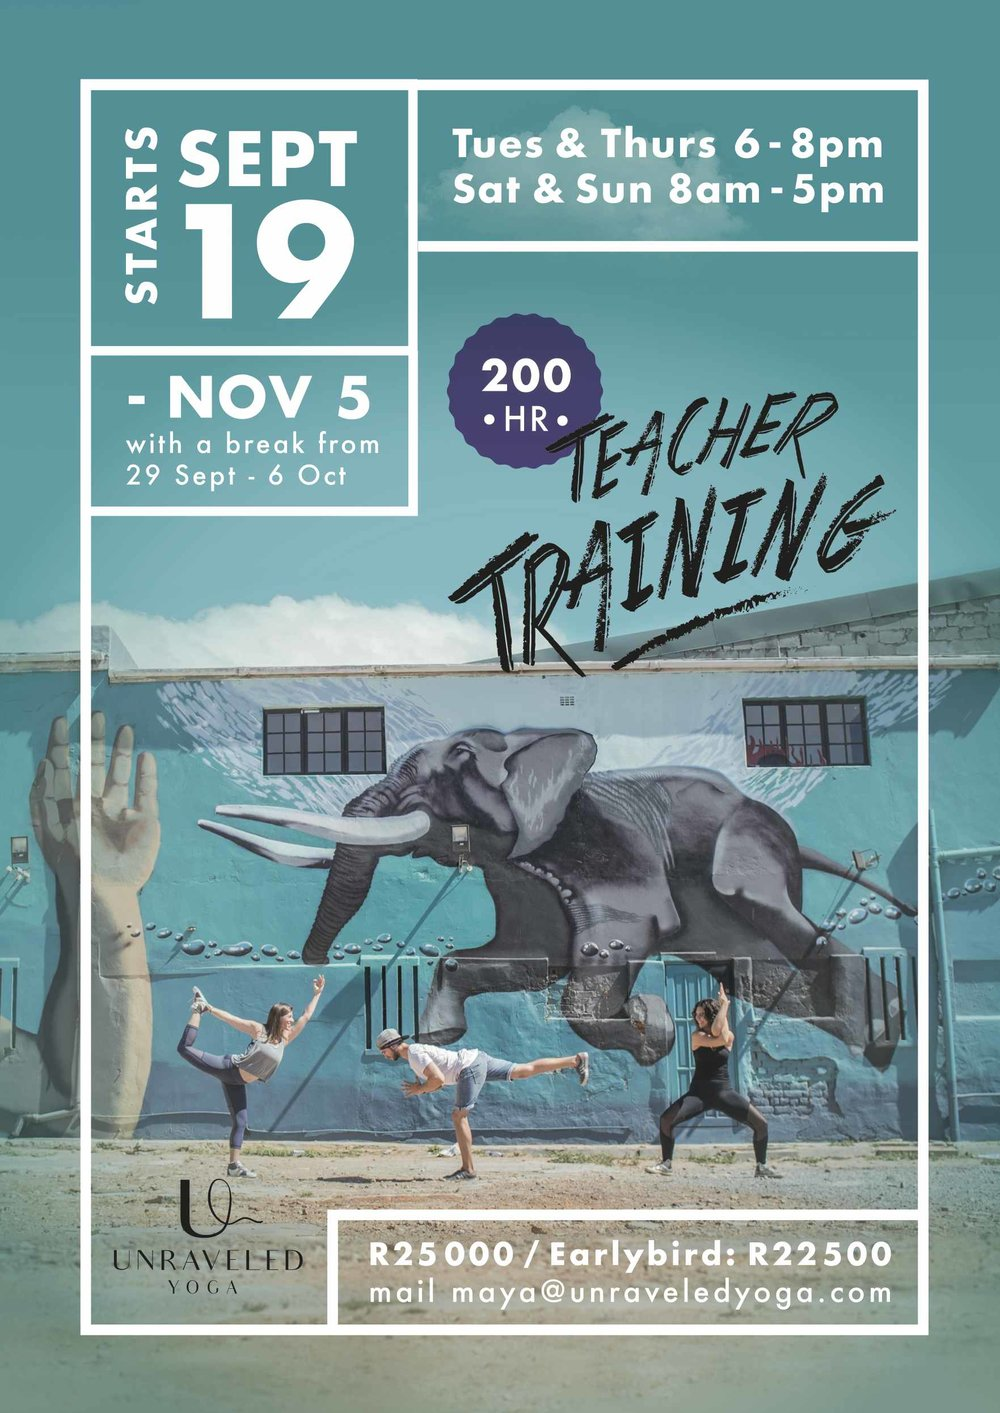 cape town yoga teacher training vinyasa yoga